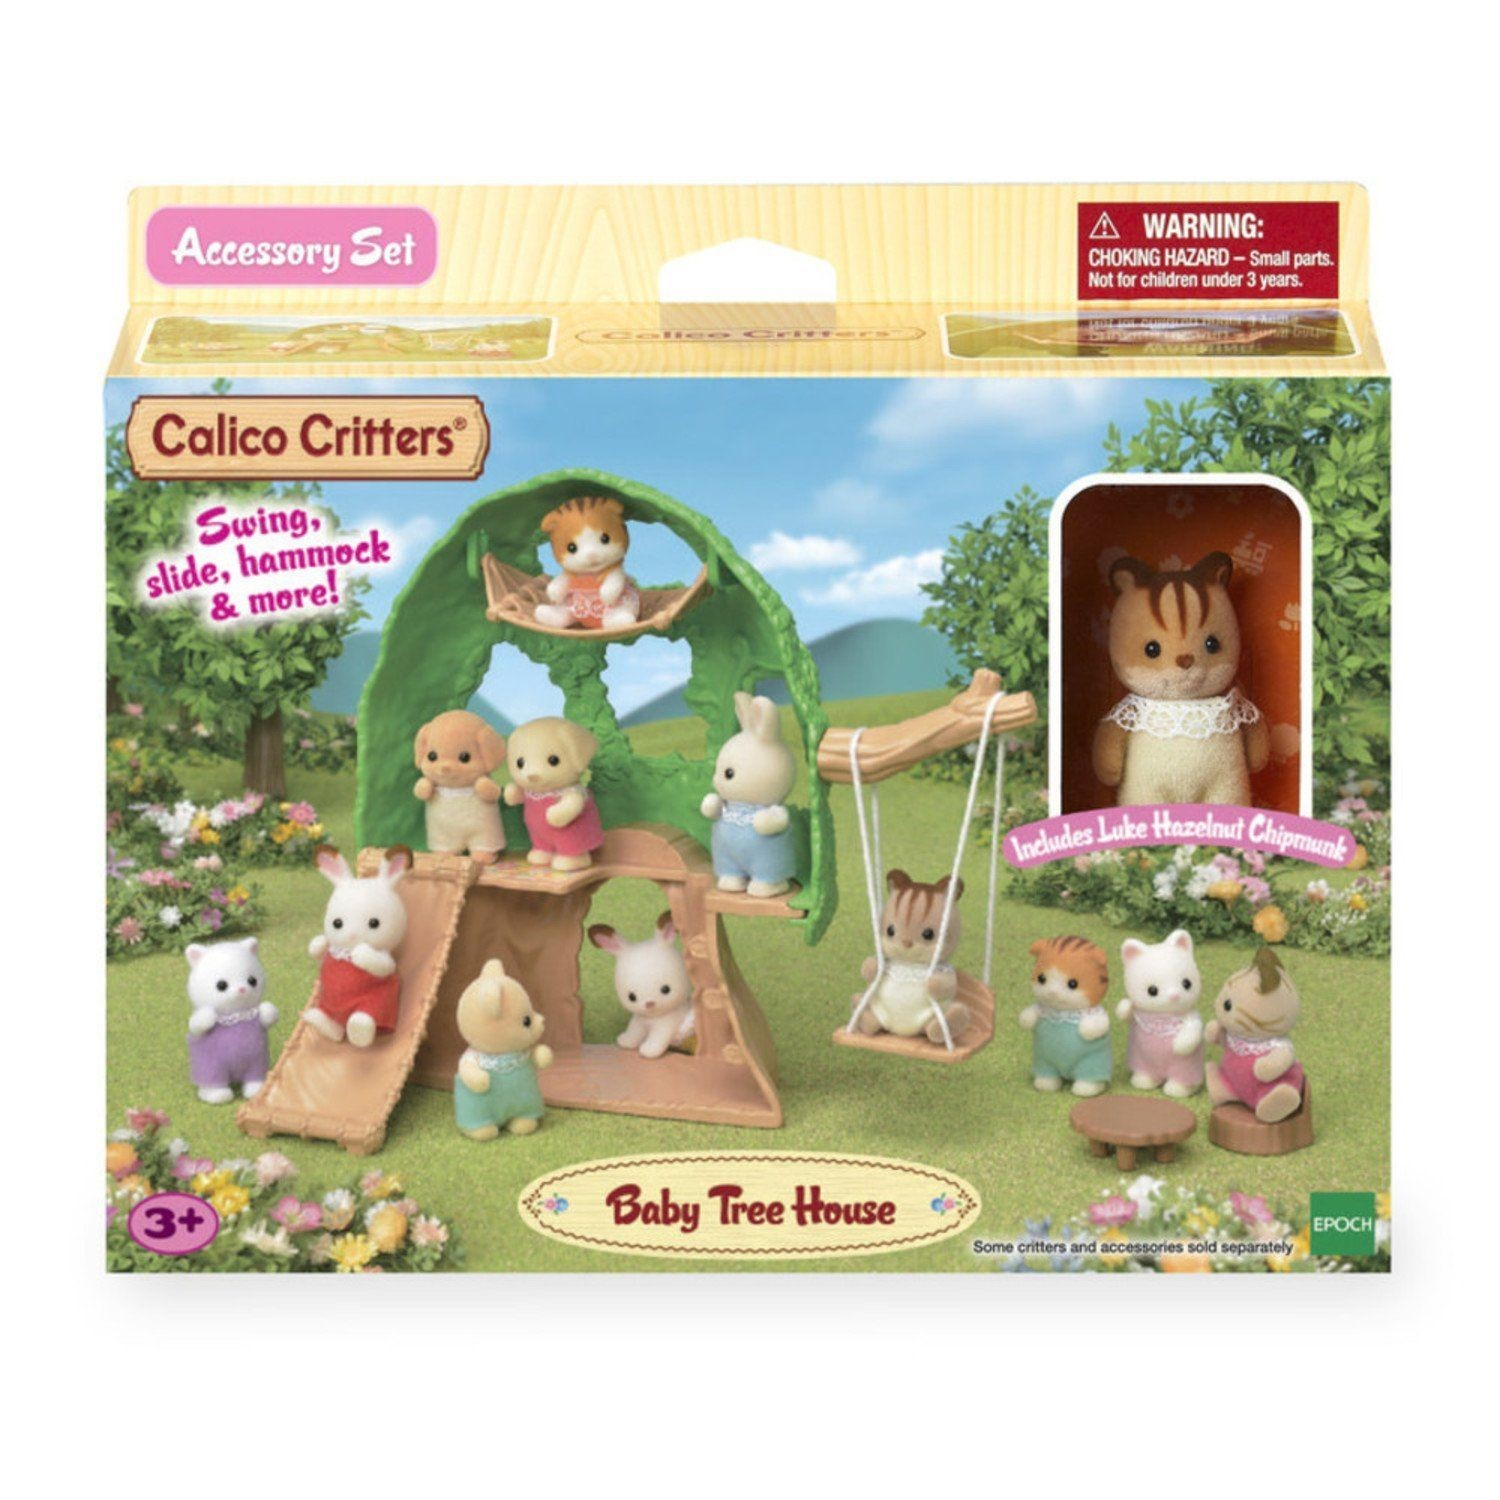 Calico Critters Baby Tree House Accessory Set - Doll House